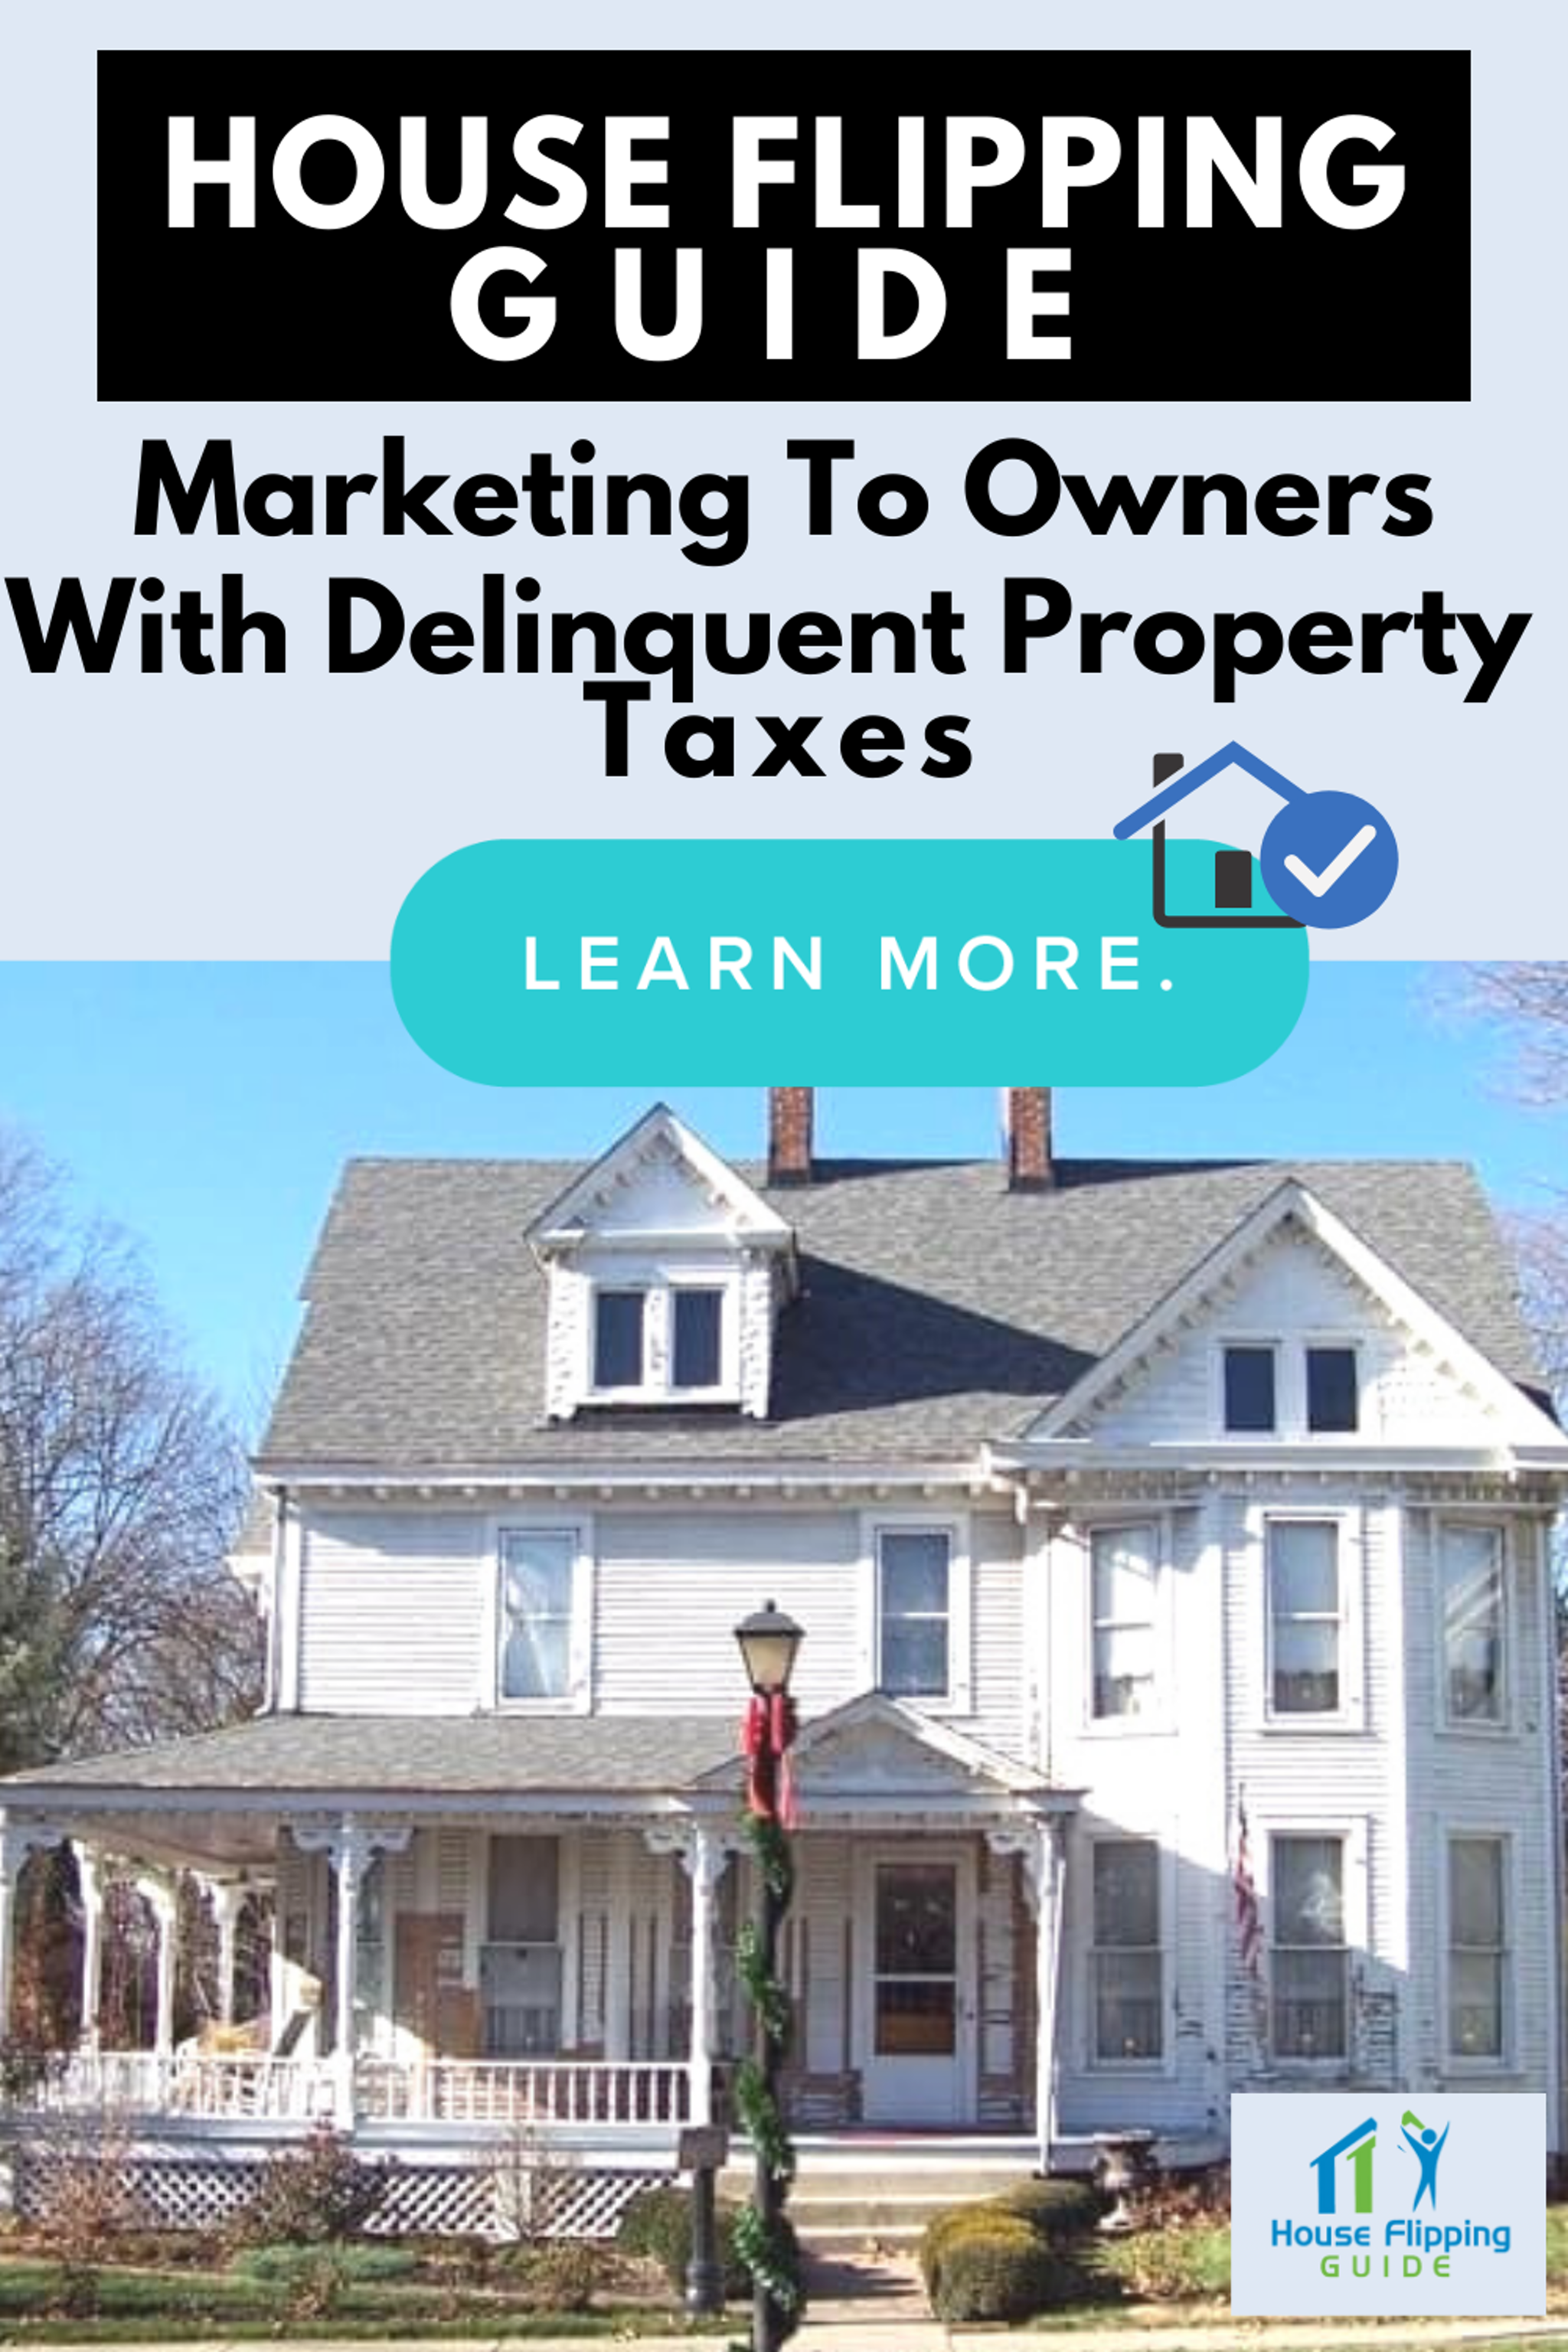 House Flipping Guide Marketing To Owners With Delinquent Property Taxes Flipping Houses Property Tax Property